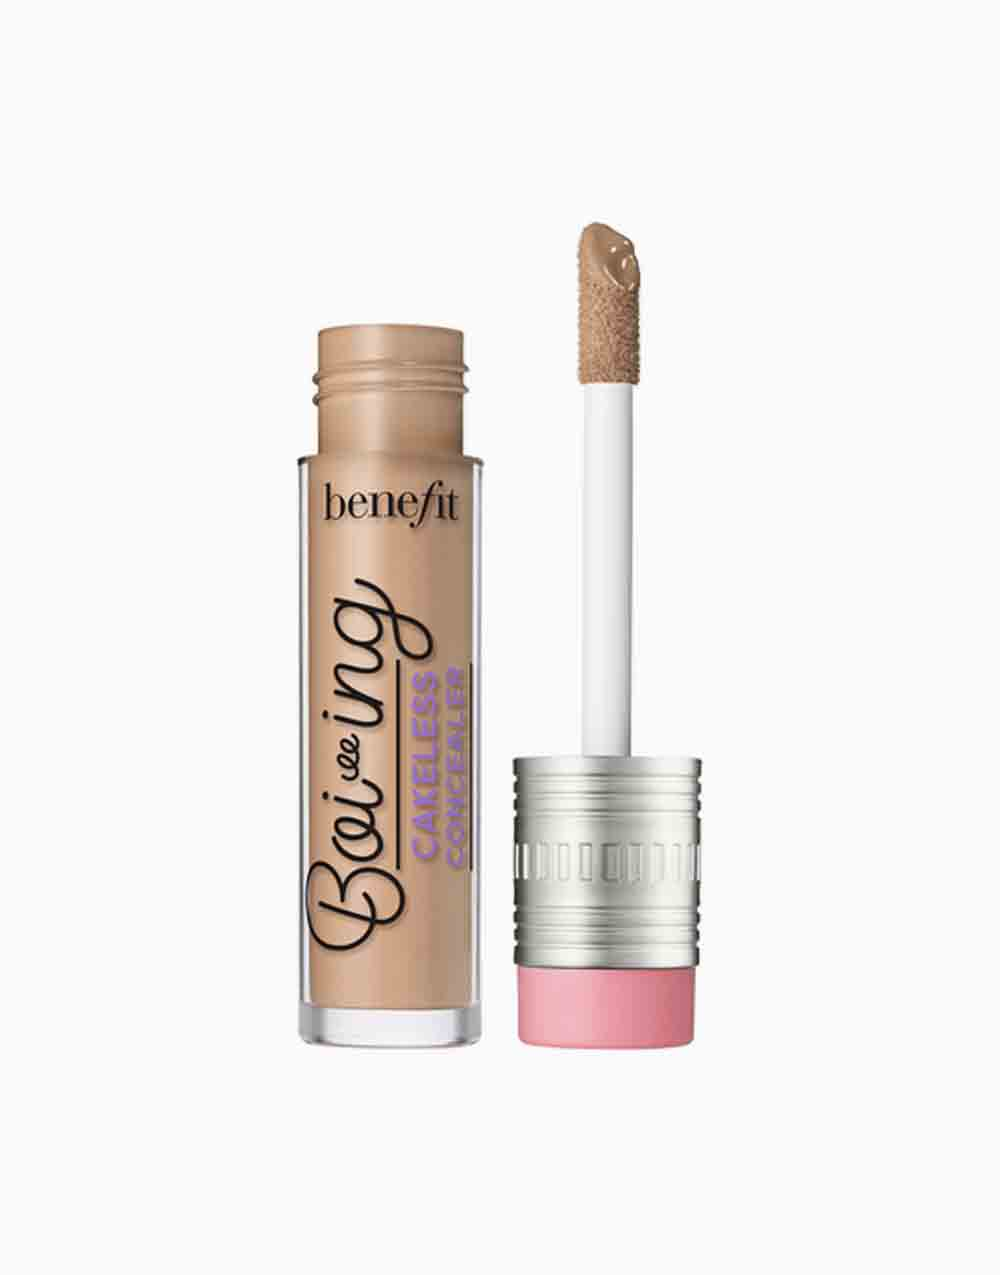 Boi-ing Cakeless Concealer by Benefit | Shade 8